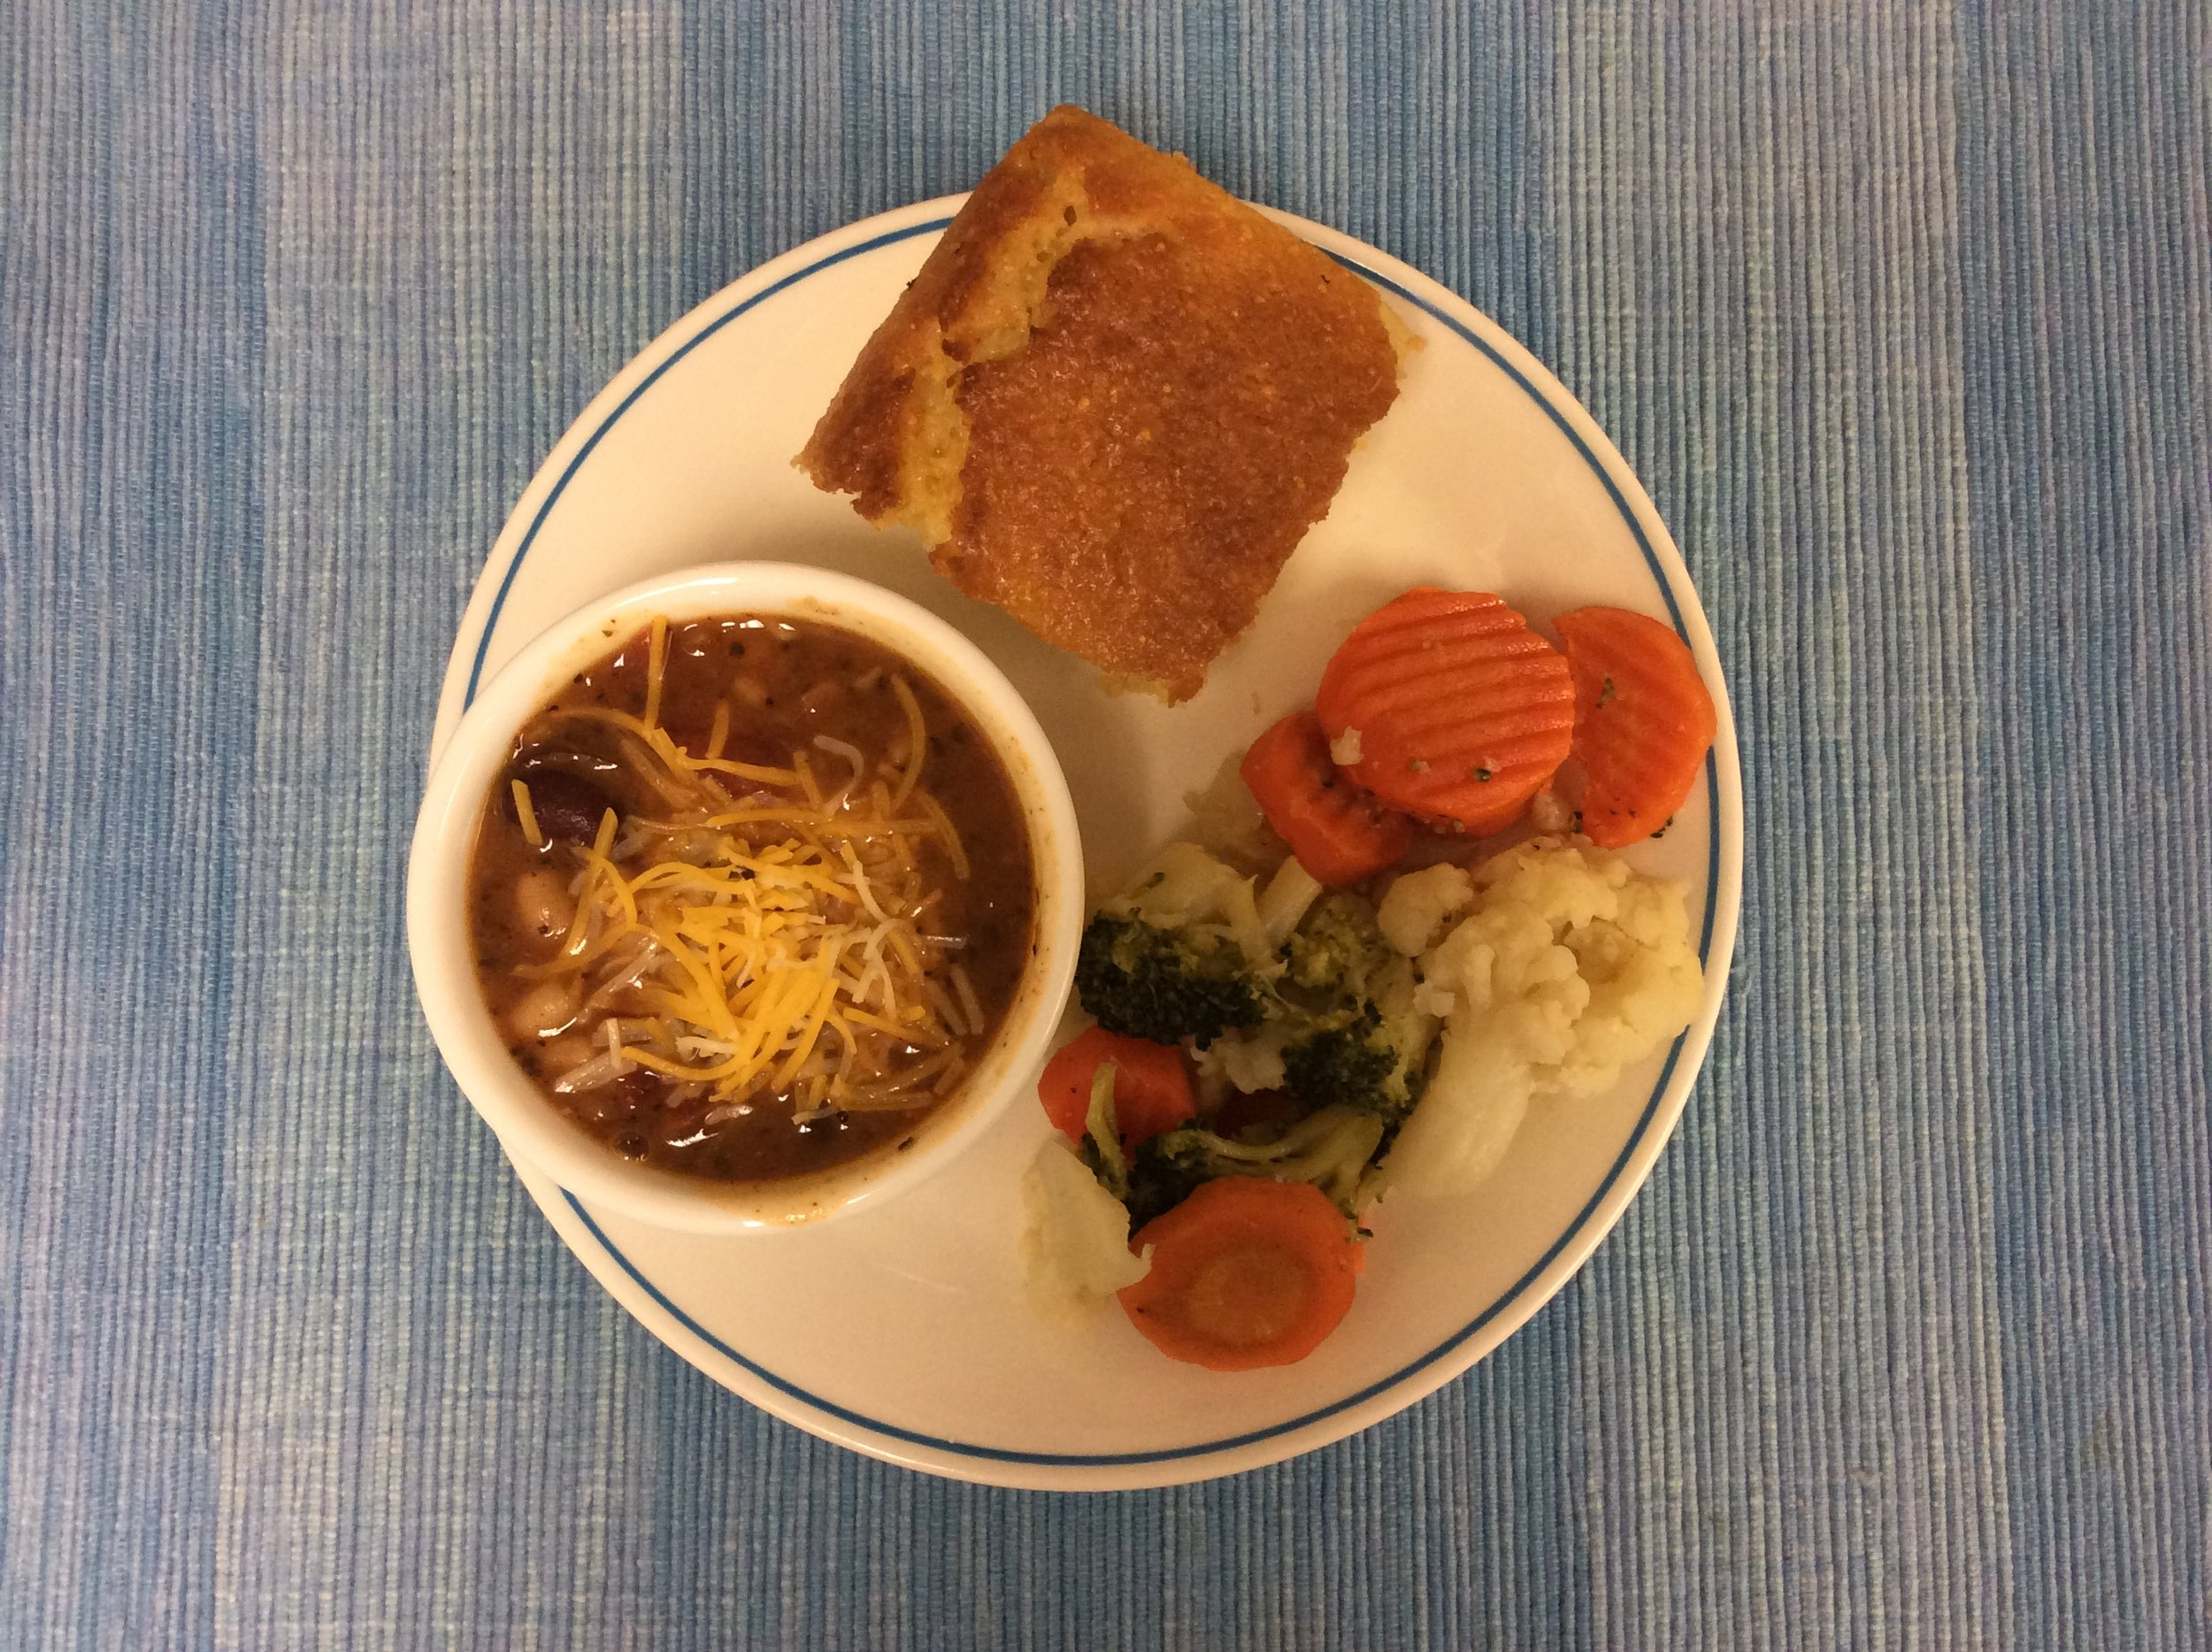 Vegetarian Chili with Cheddar Cheese, California blend vegetables, and honey cornbread